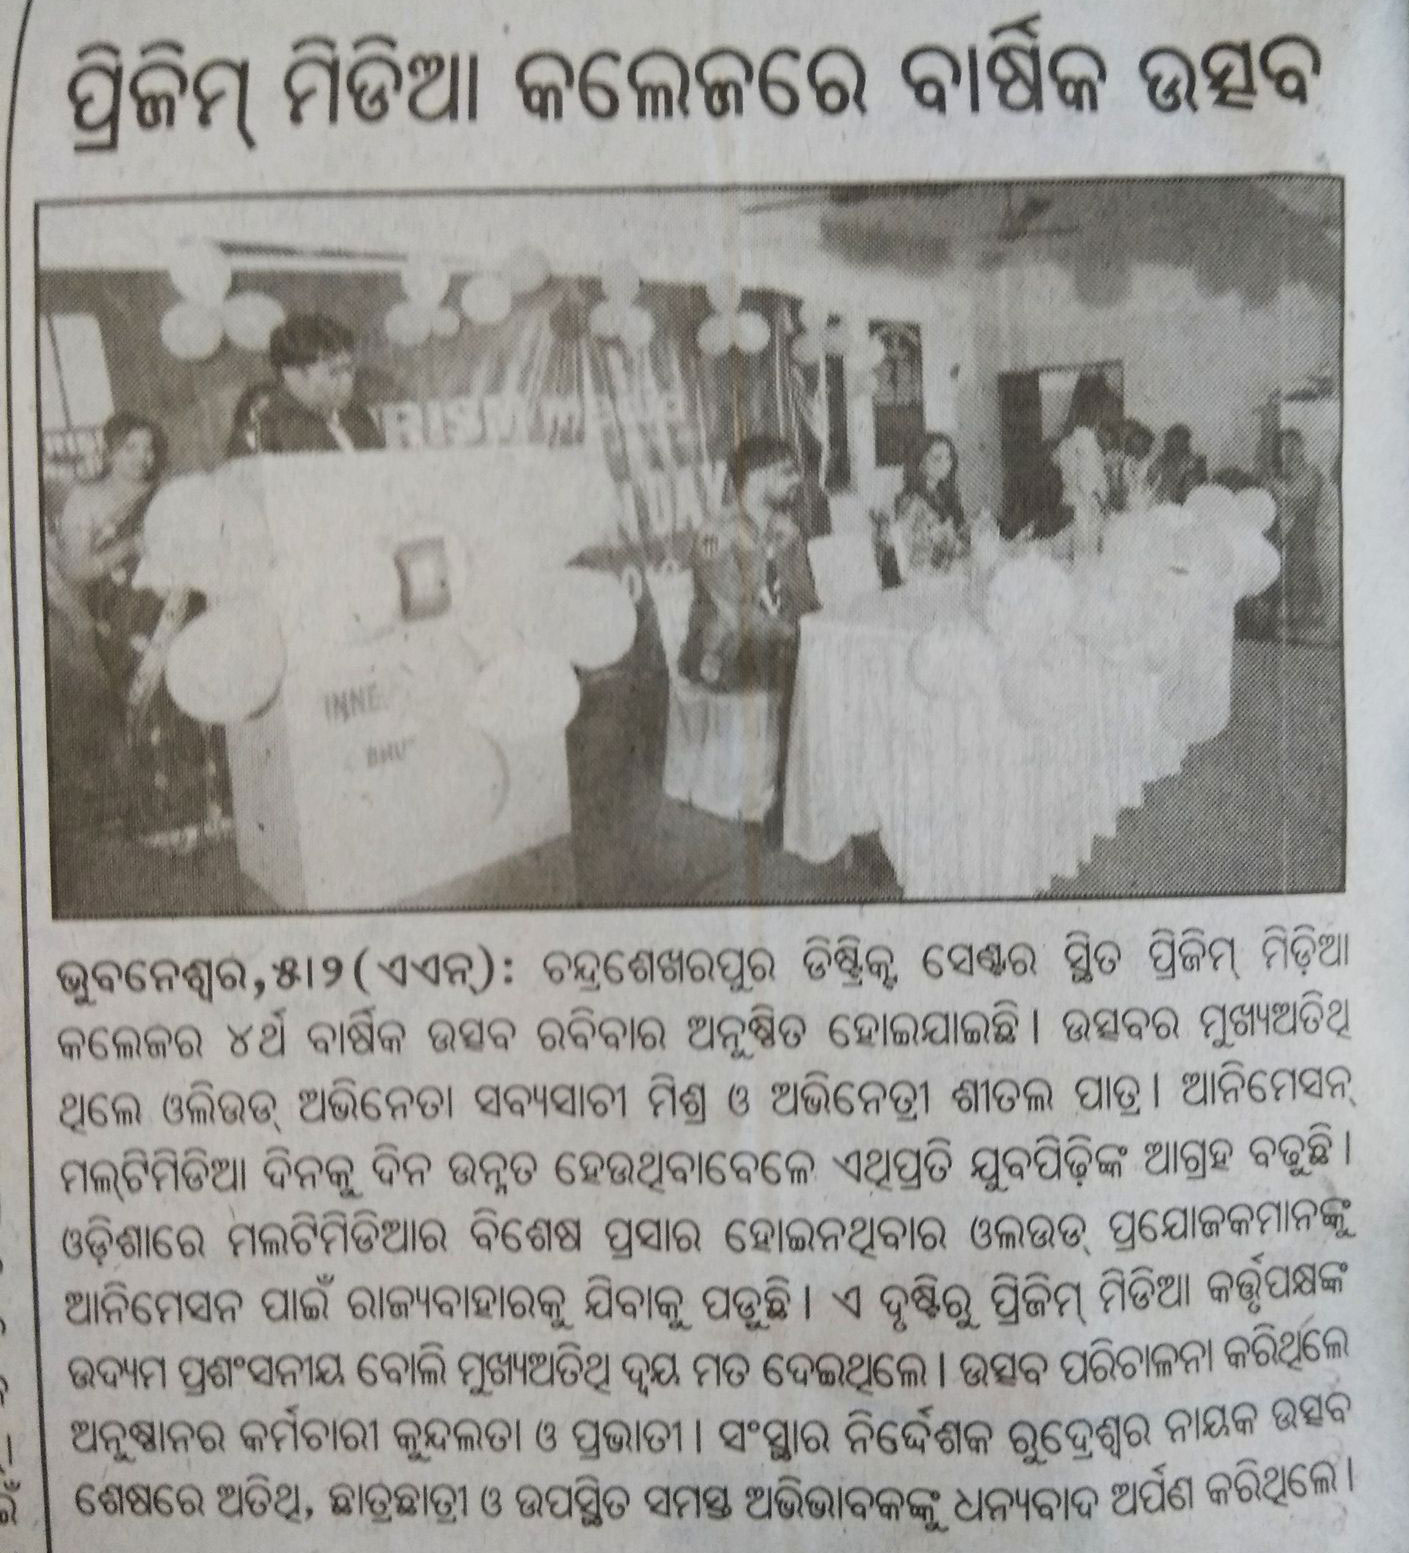 news-paper-prism-media-annual-function